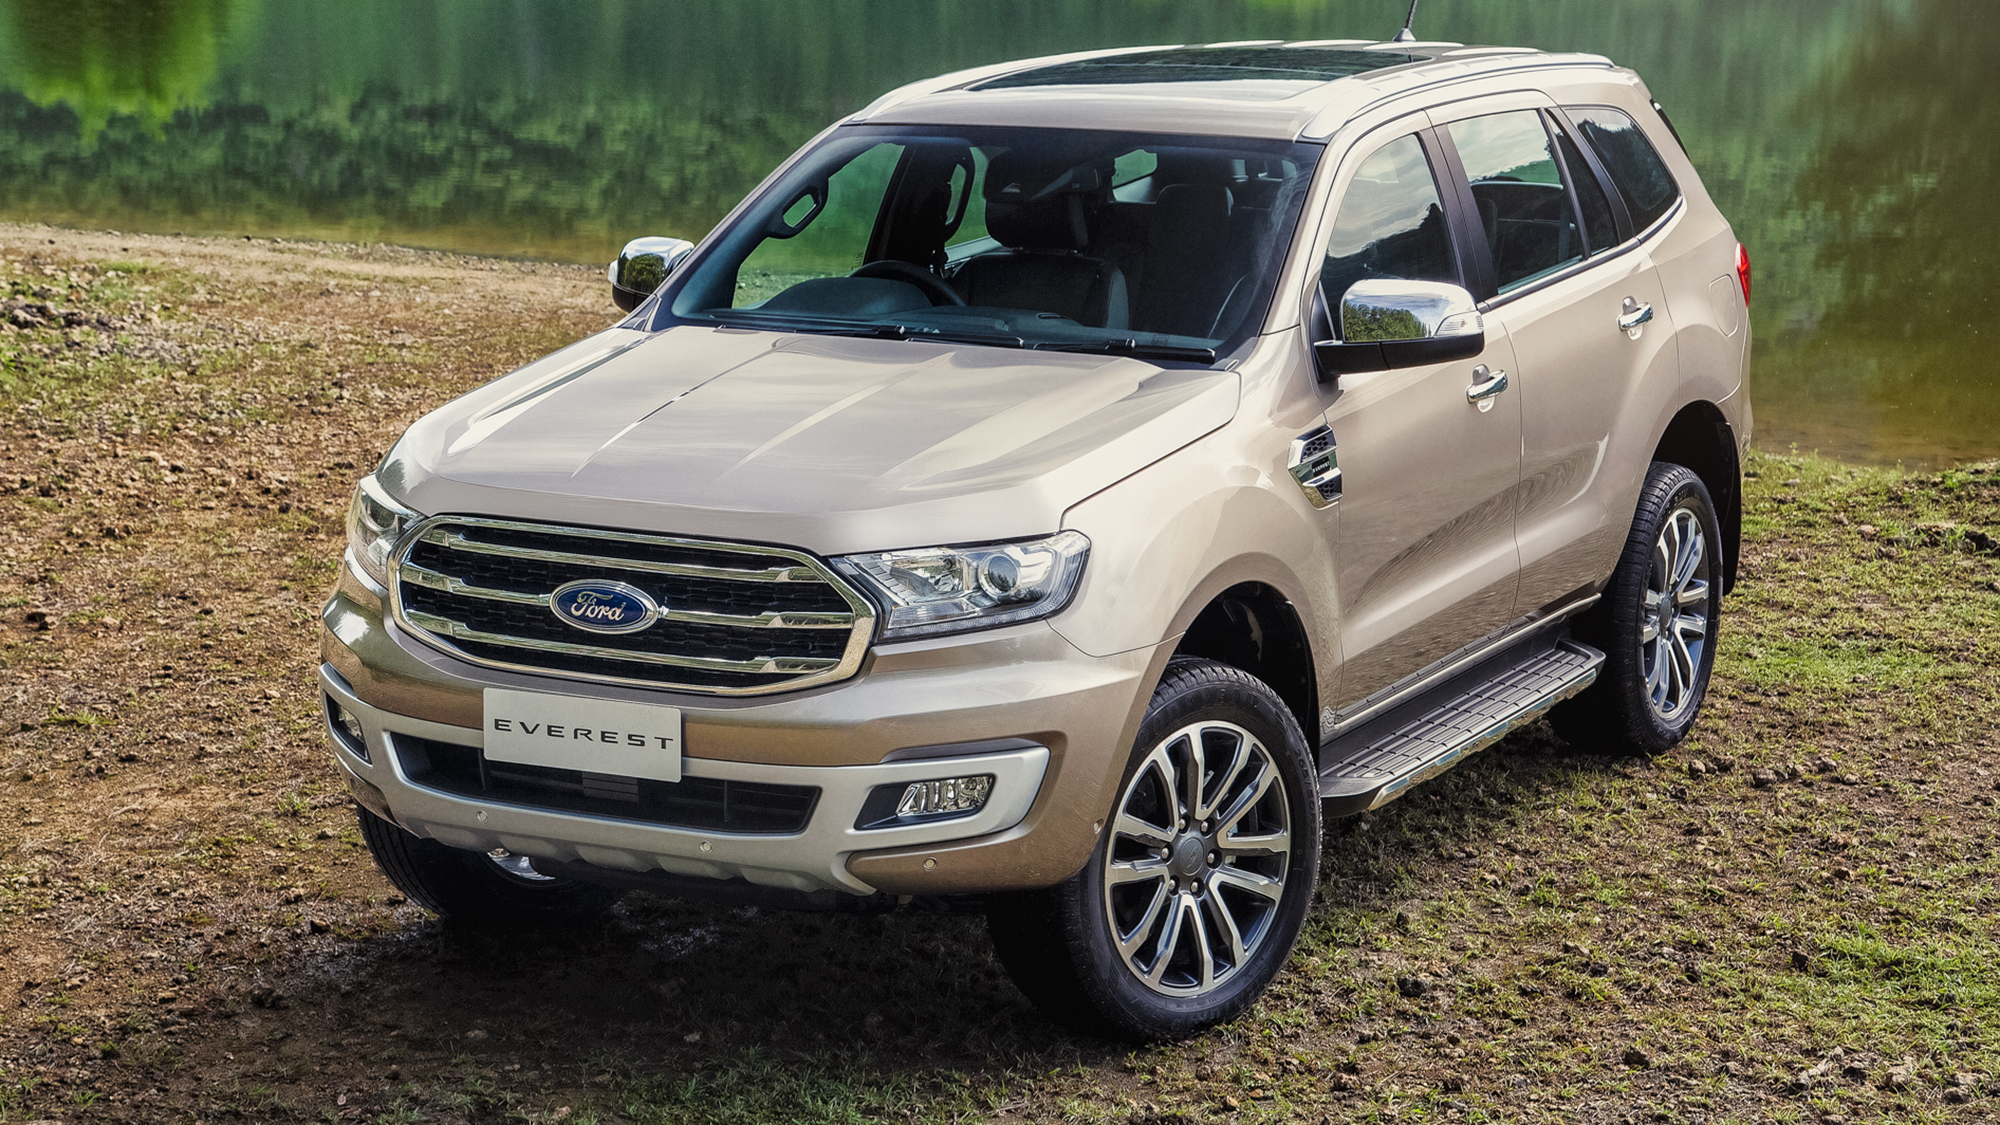 2019 Ford Everest Pricing And Specs Caradvice